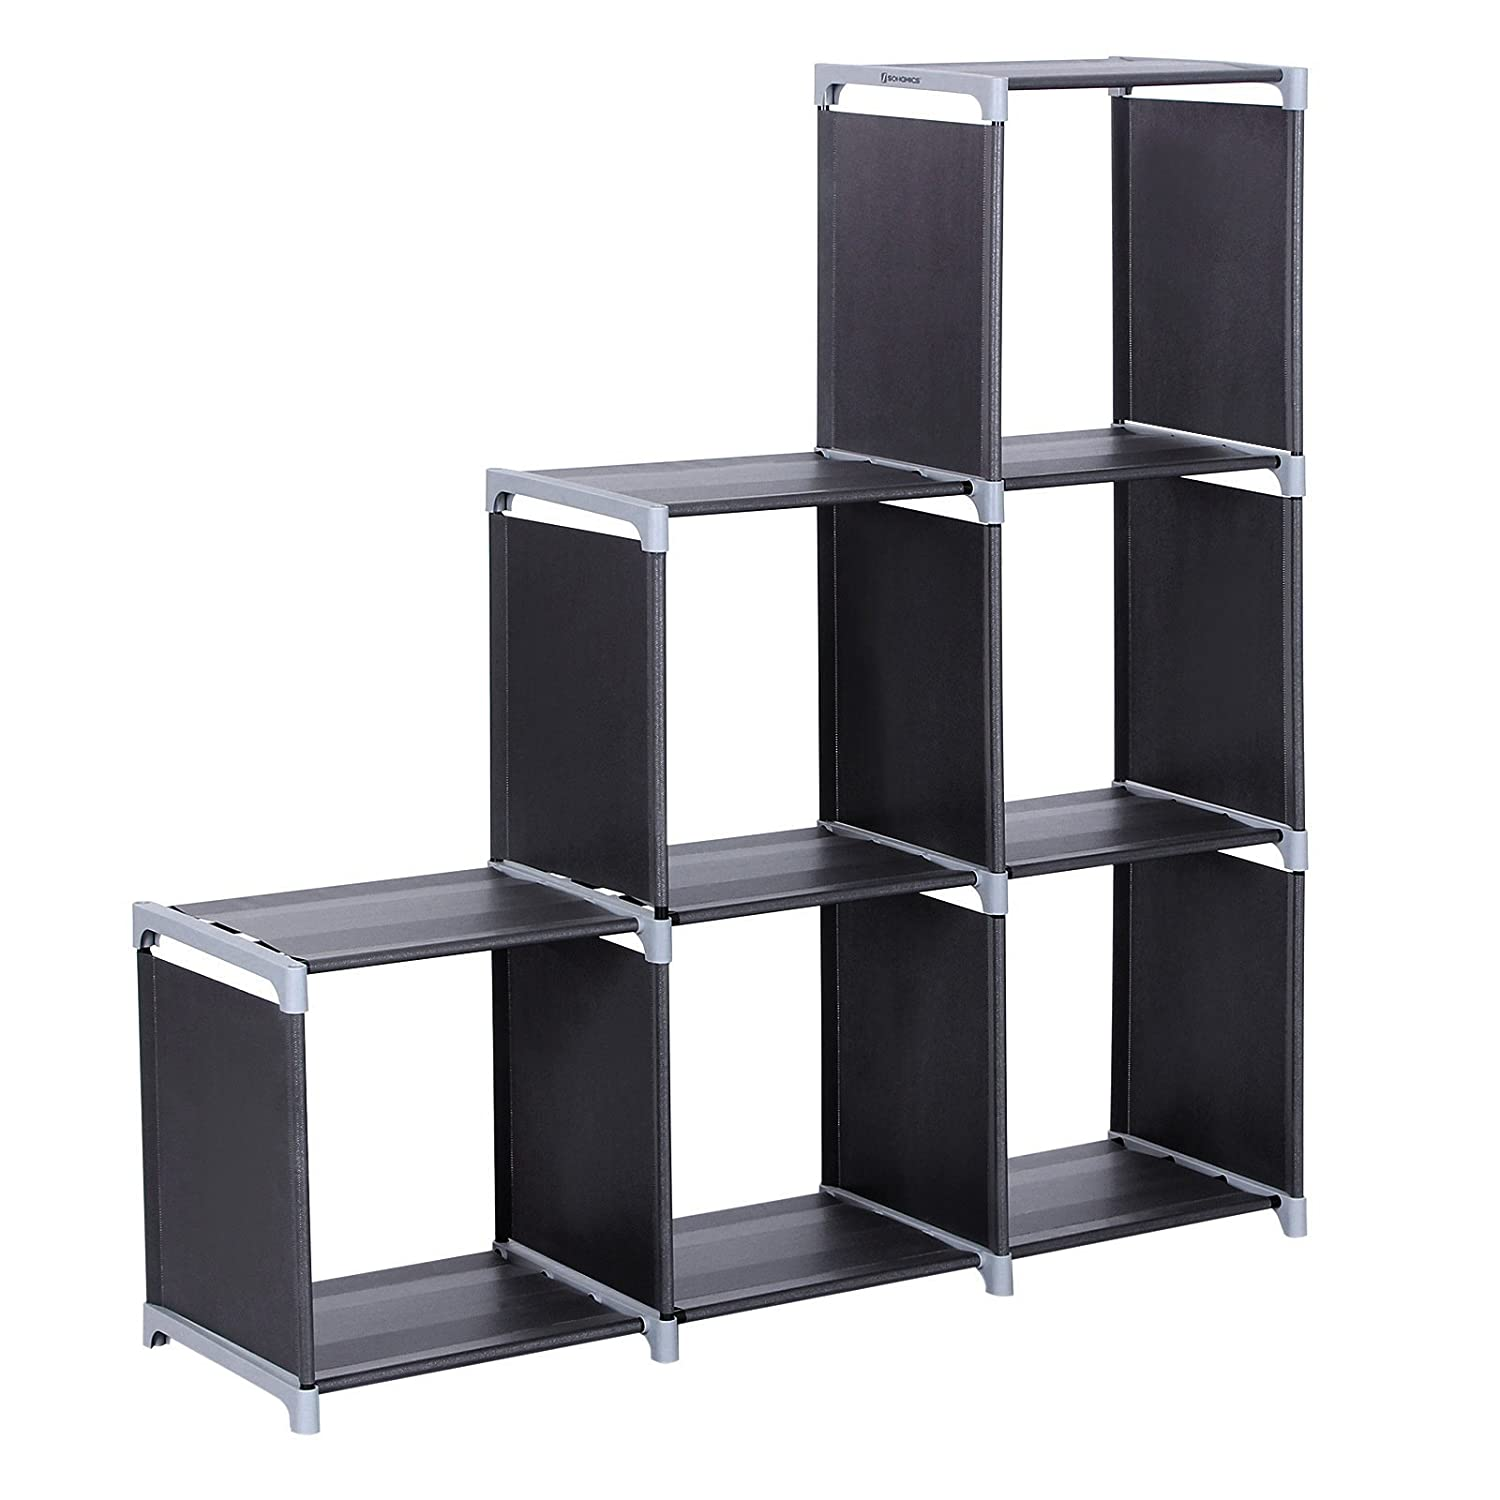 Office Cabinets Racks Shelves Amazon Com Office Furniture